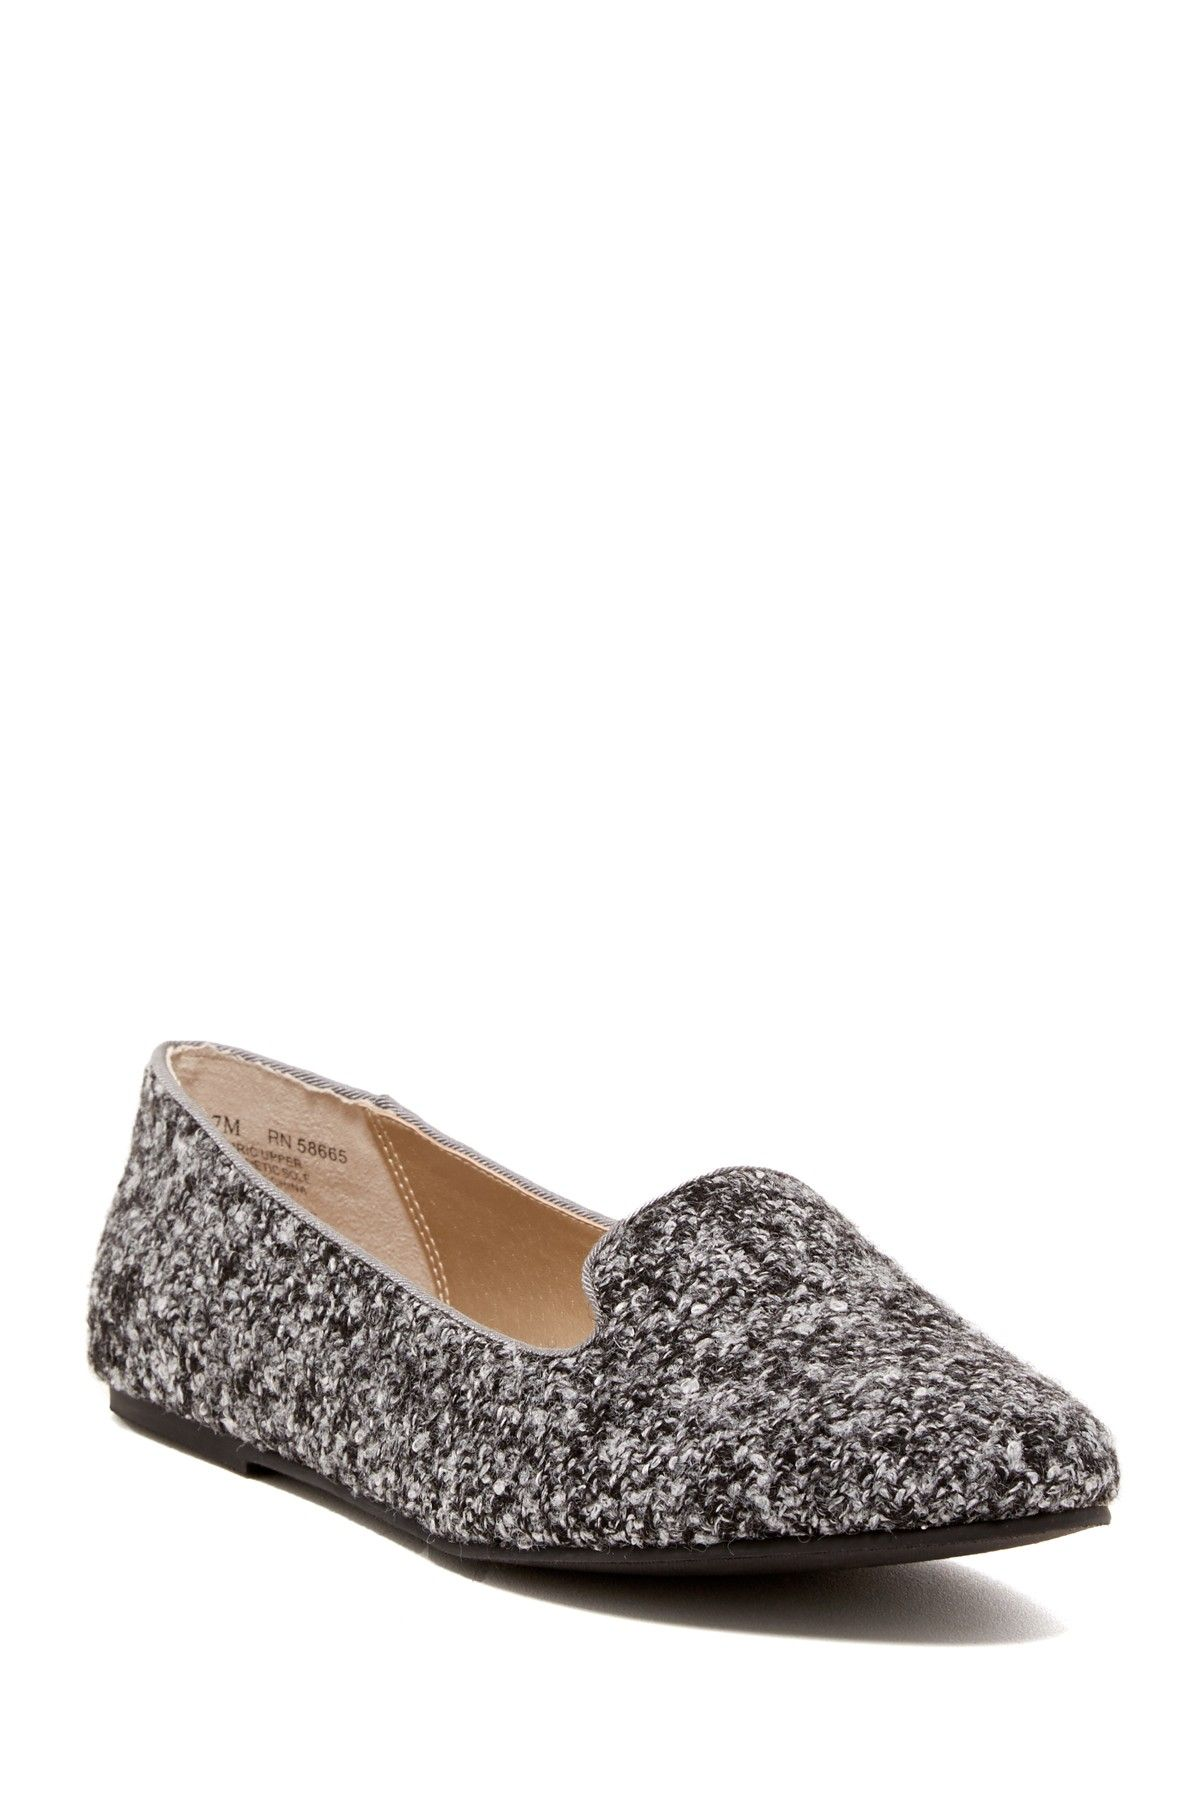 Abound | Kiley Boucle Loafer Wide Width Available